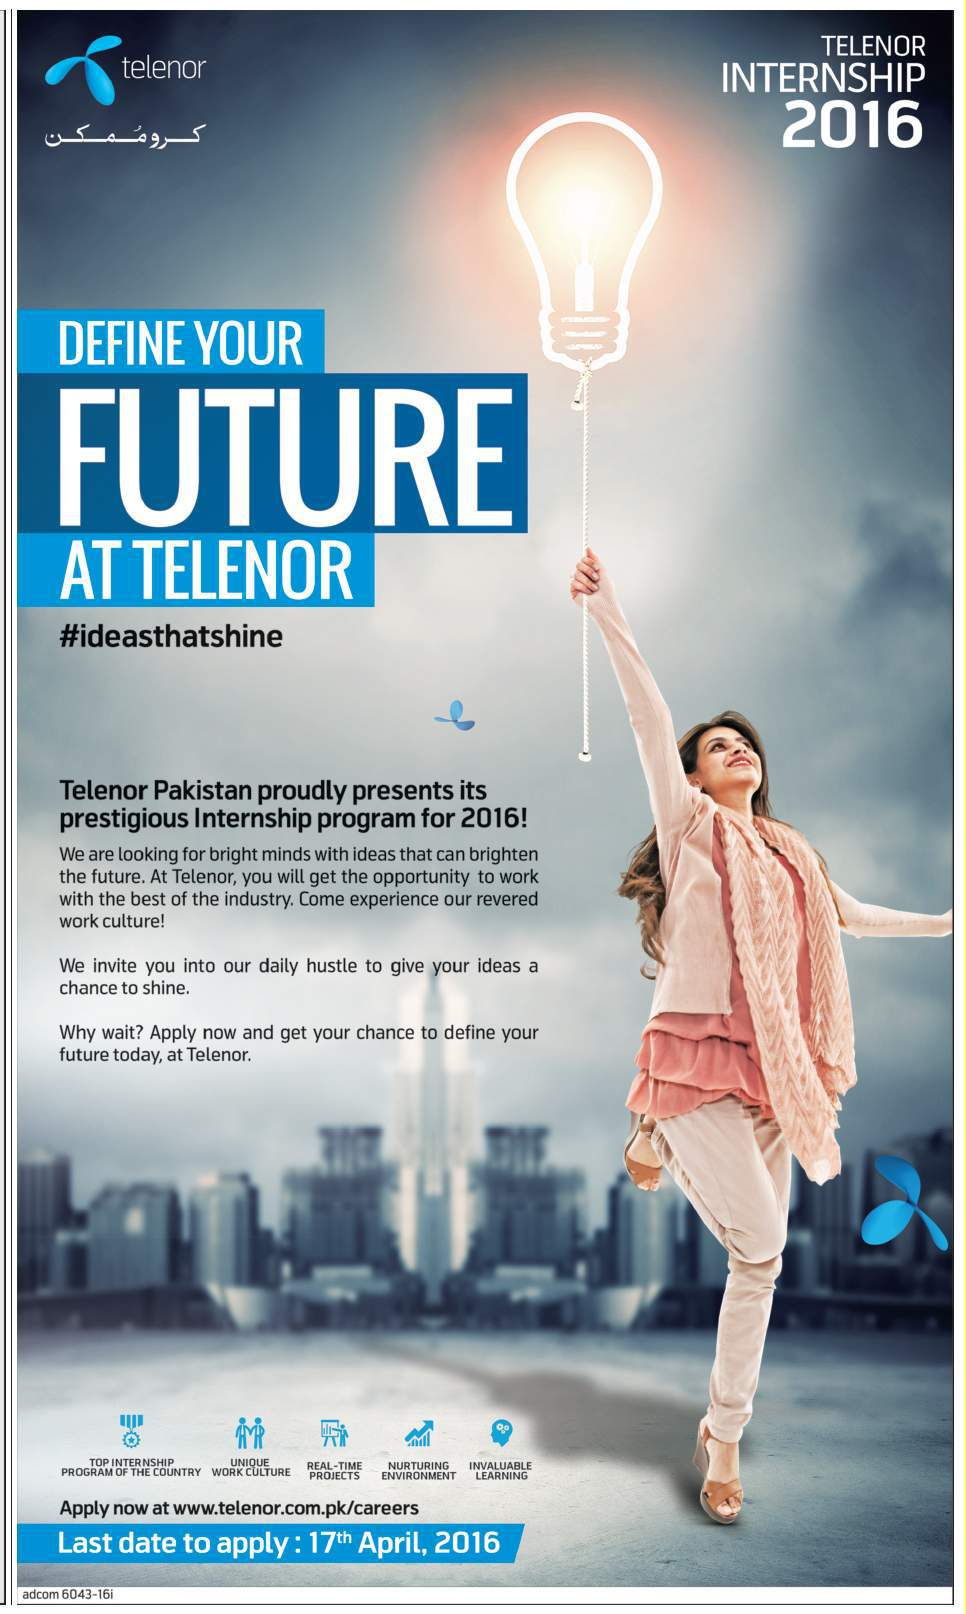 Telenor Internship Program 2016